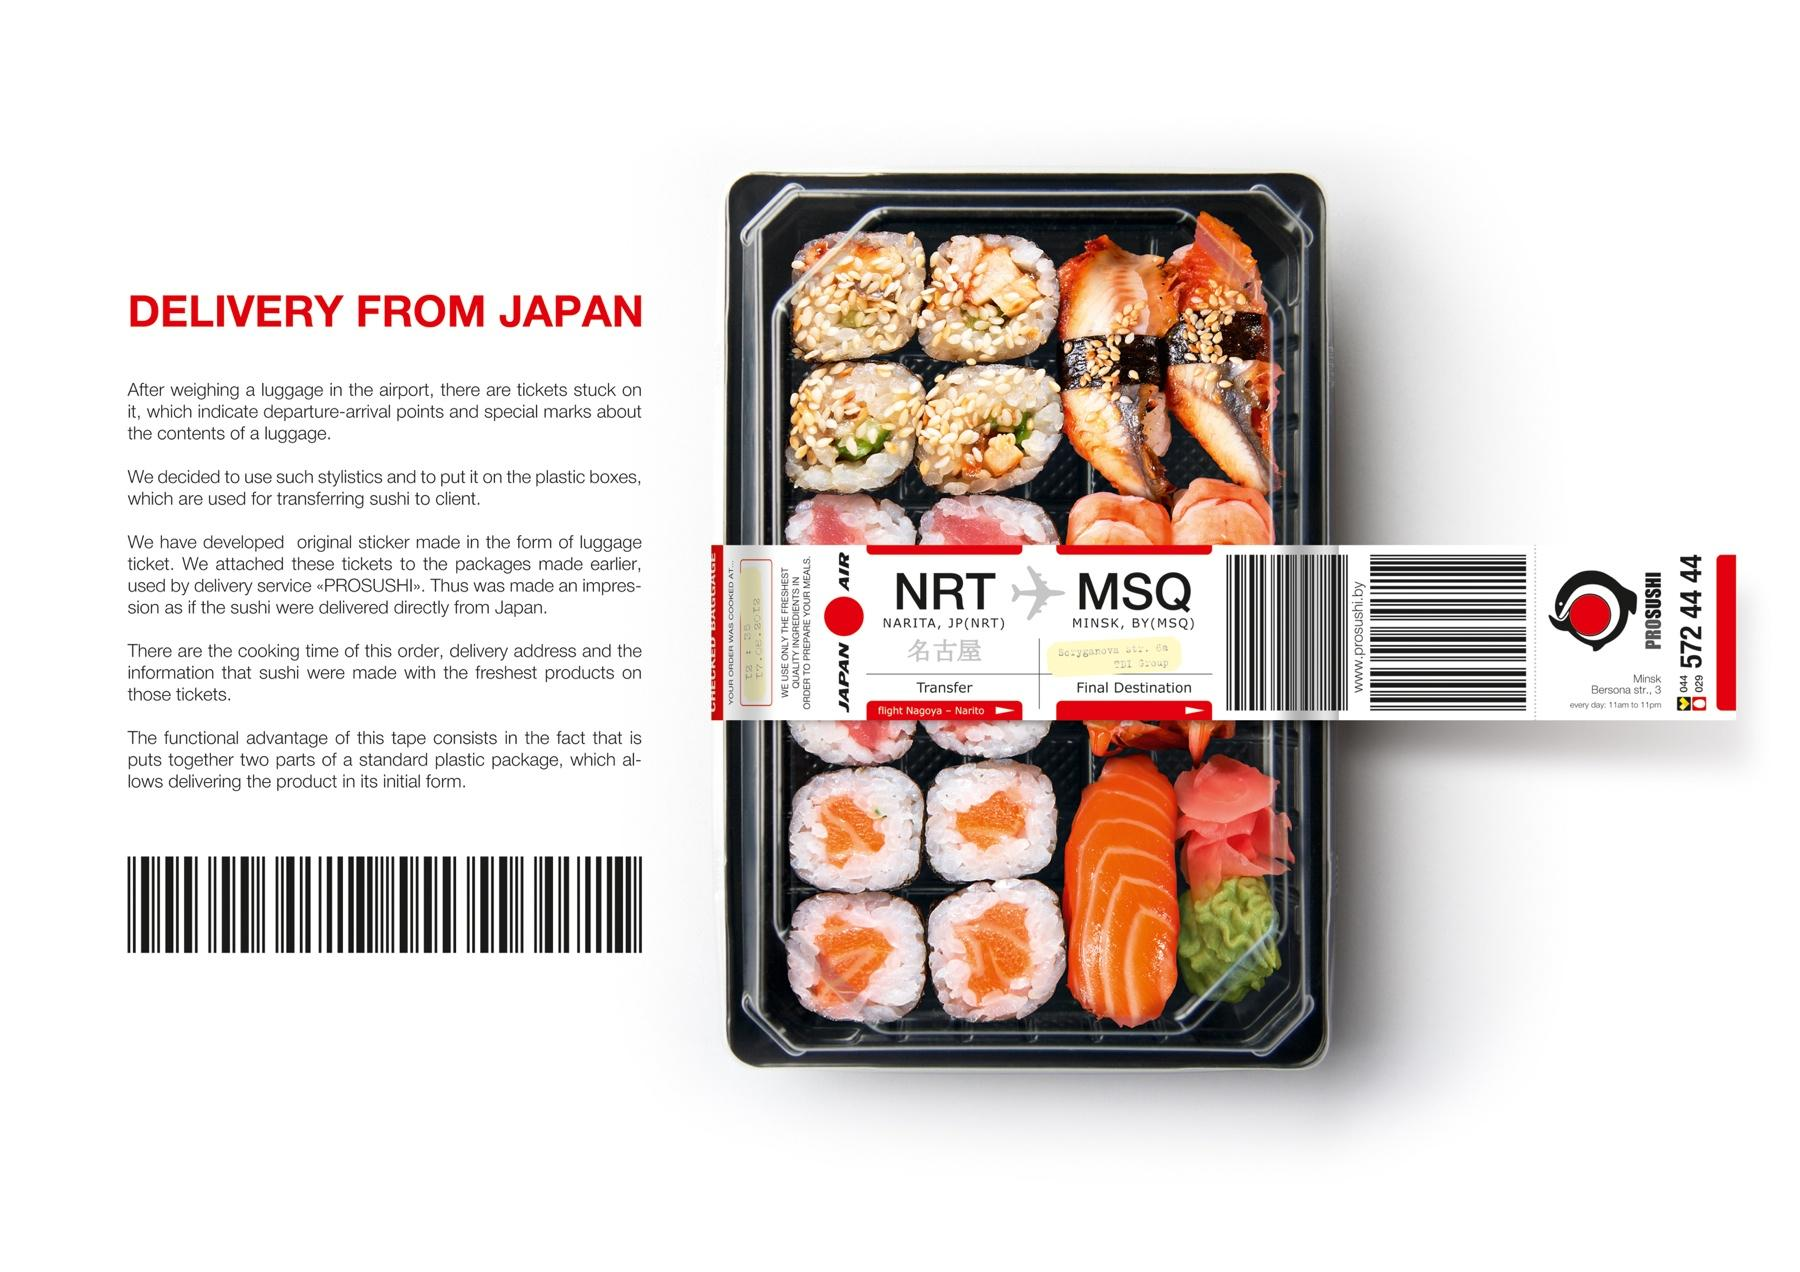 Prosushi Direct Ad -  Delivery from Japan